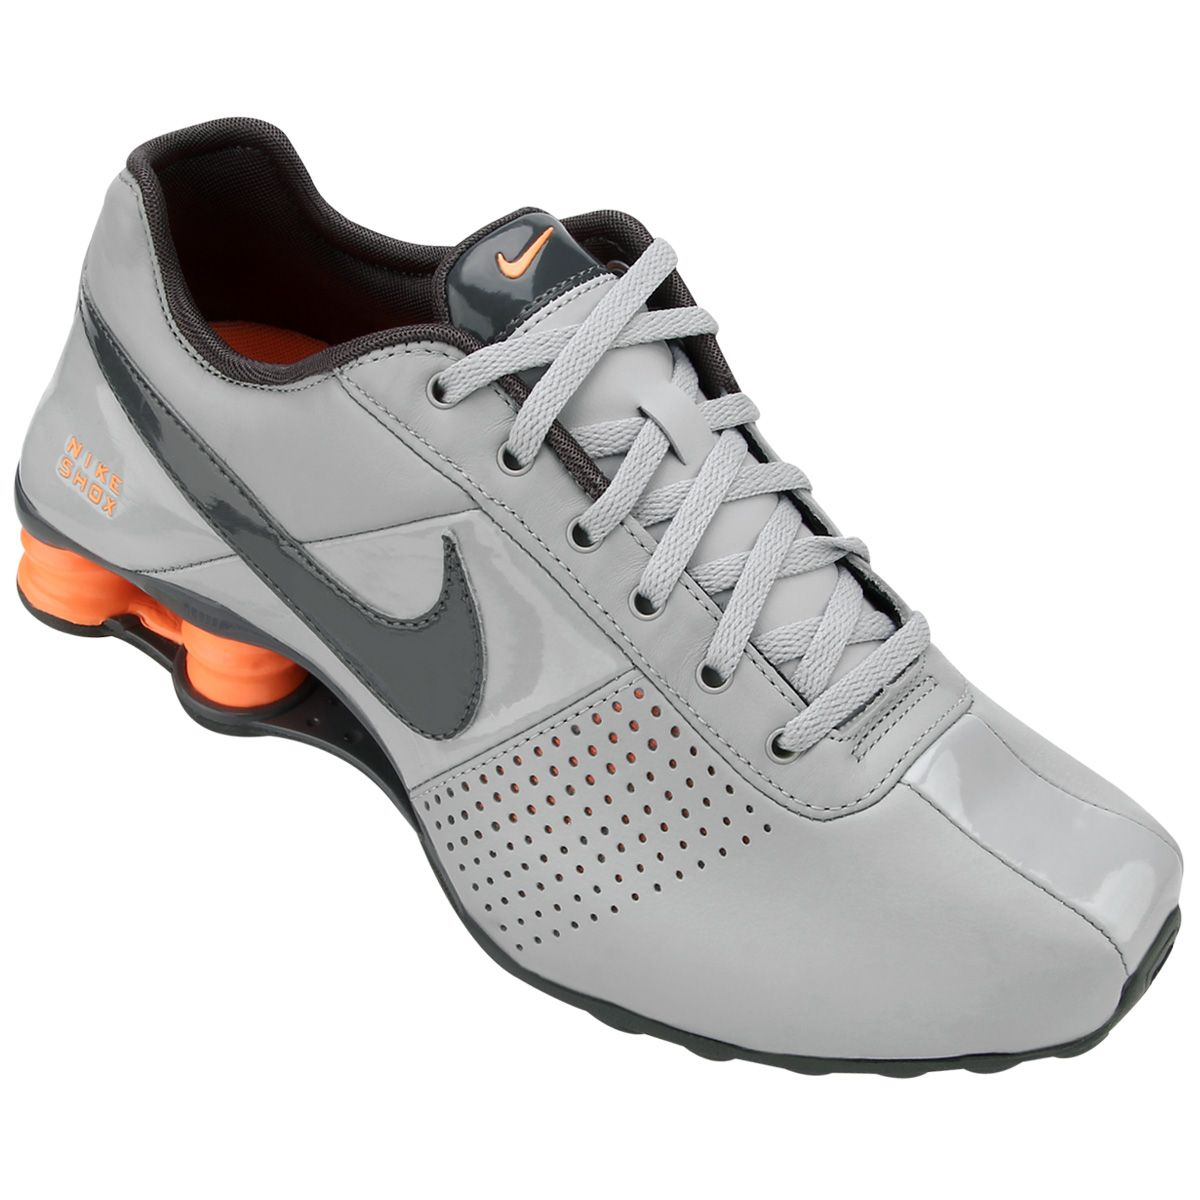 purchase cheap bc439 518d7 ... netherlands tênis nike shox deliver netshoes lugares para visitar 93bfb  9b40c